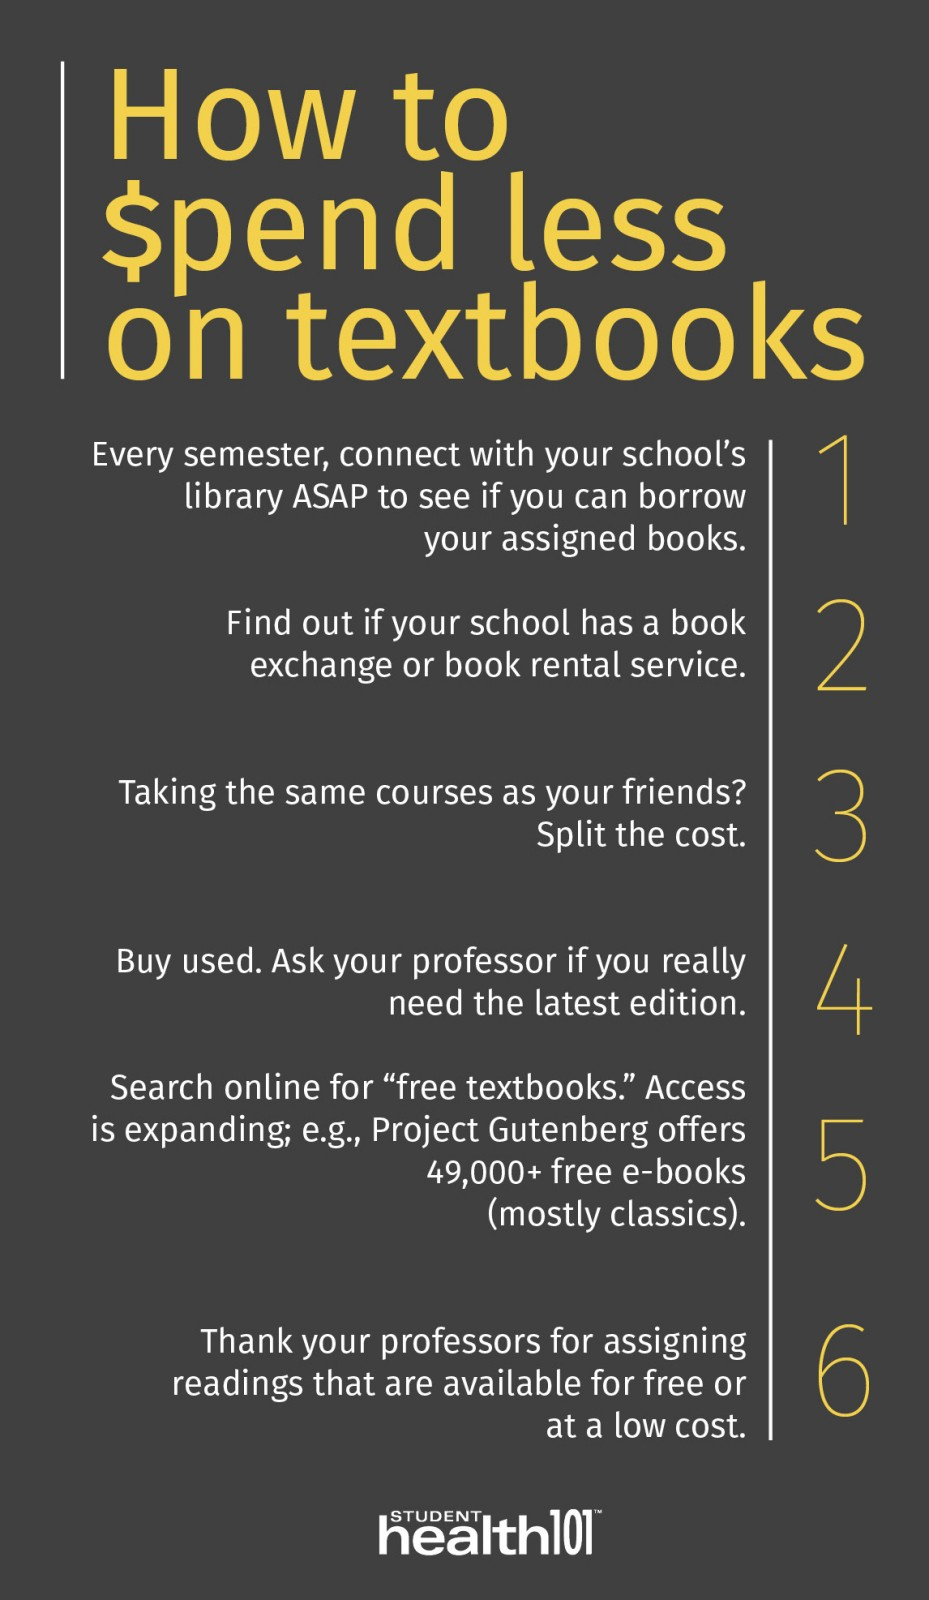 How to spend less on textbooks: 1. Every semester, connect with your school's library ASAP to see if you can borrow your assigned books. 2. Find out if your school has a book exchange or book rental service. 3. Taking the same courses as your friends? Split the cost. 4. Buy used. Ask your professor if you really need the latest edition. 5. Search online for free textbooks. Access is expanding; e.g., Project Gutenberg offers 49,000+ free e-books (mostly classics). 6. Thank your professors for assigning readings that are available for free or at a low cost.